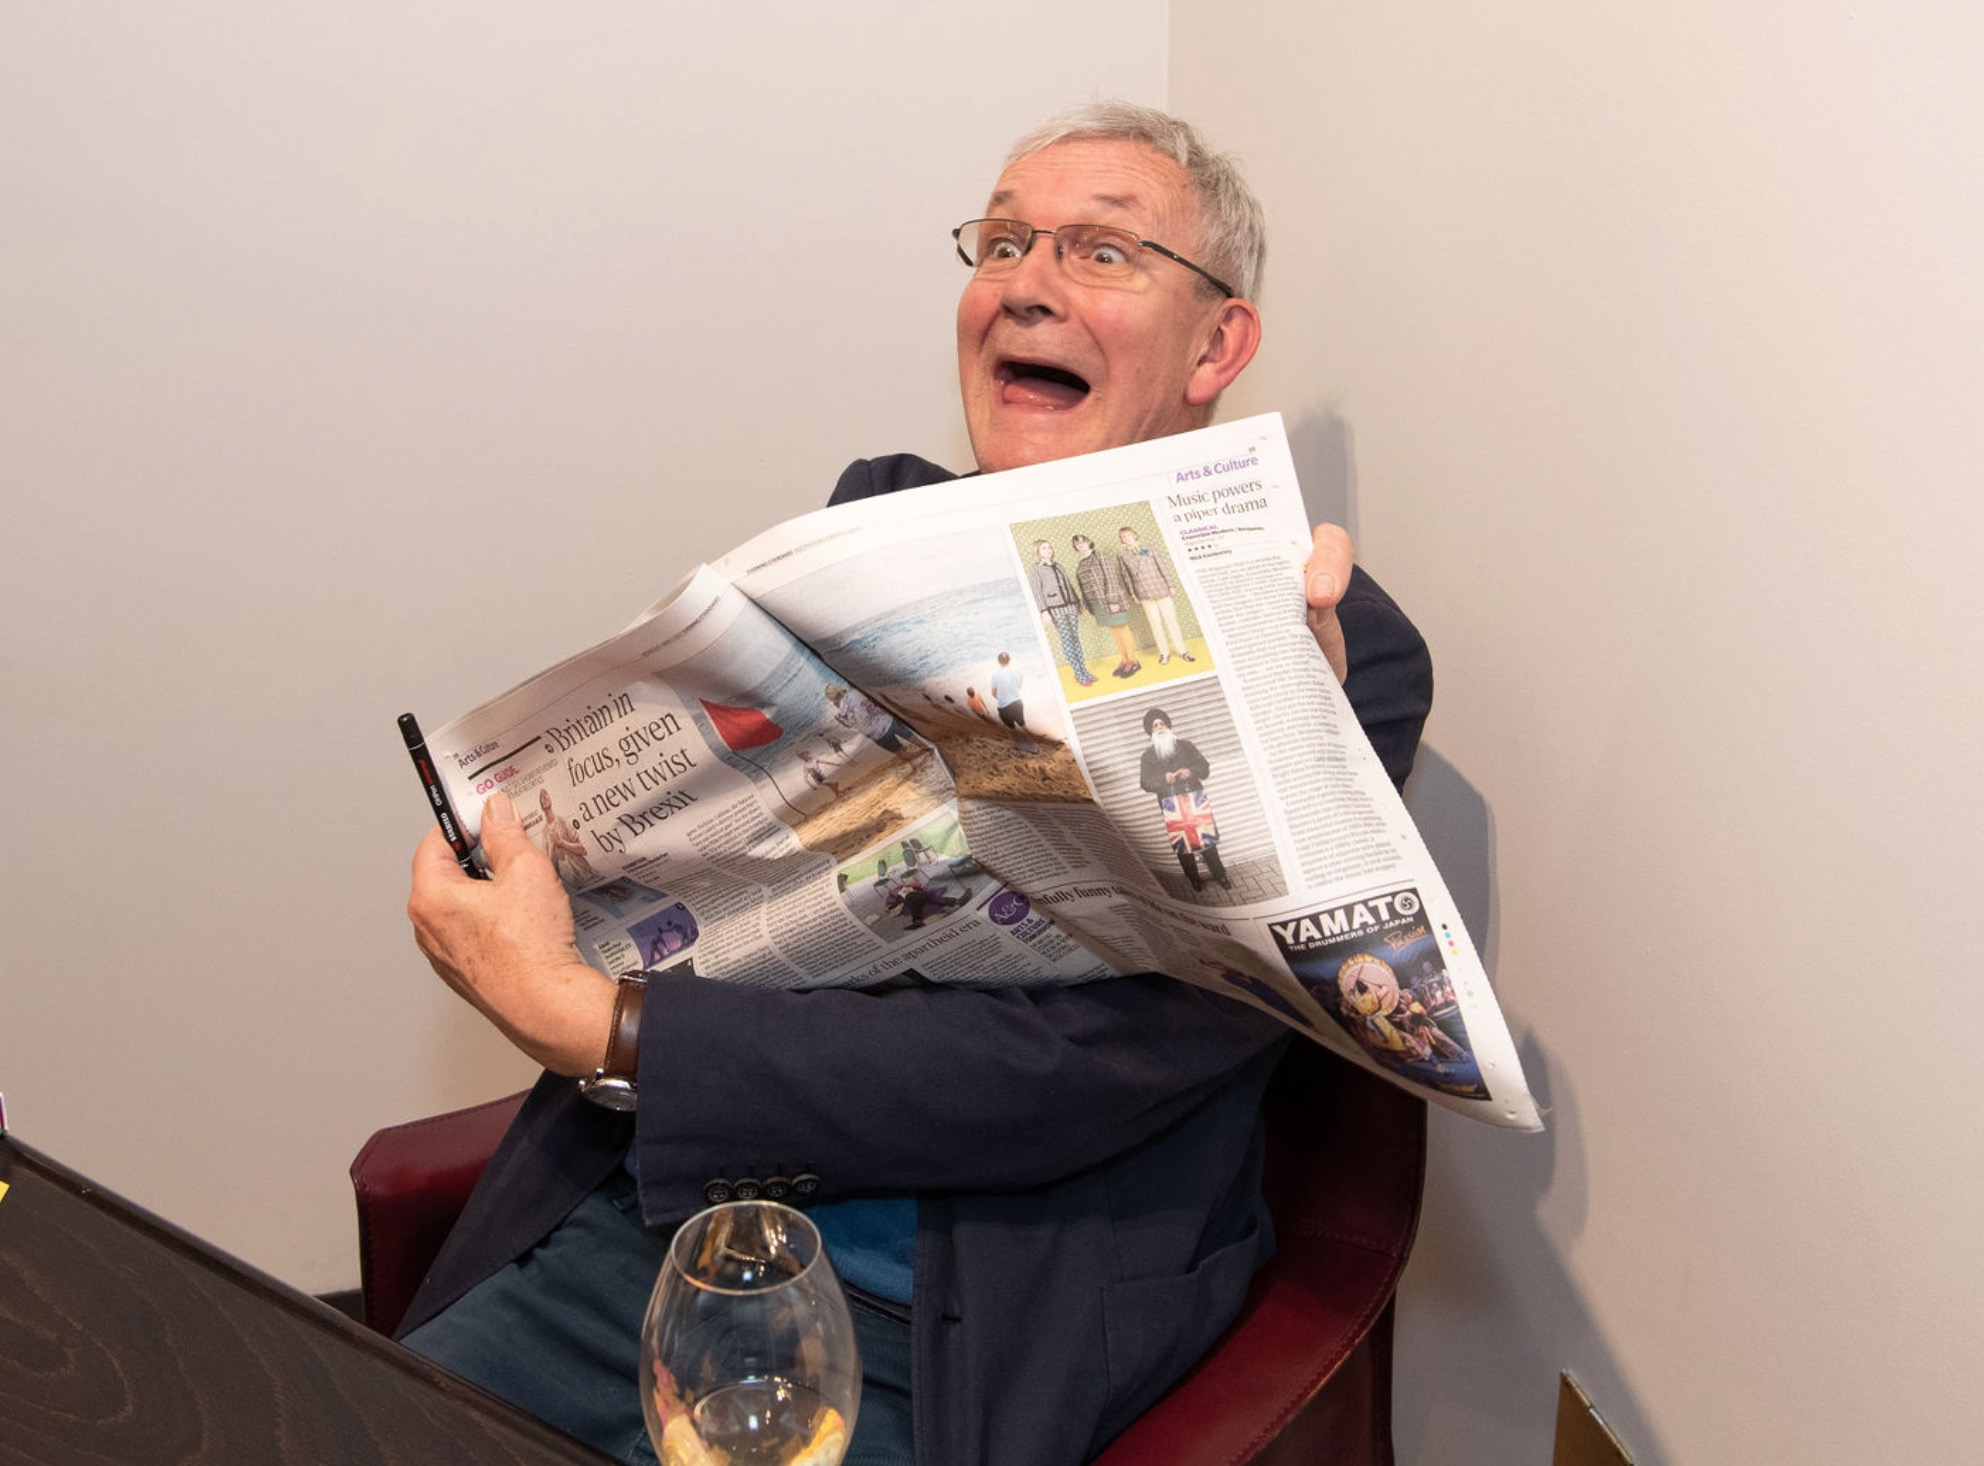 Martin reads his latest reviews - they're all good! Photograph by James Mason